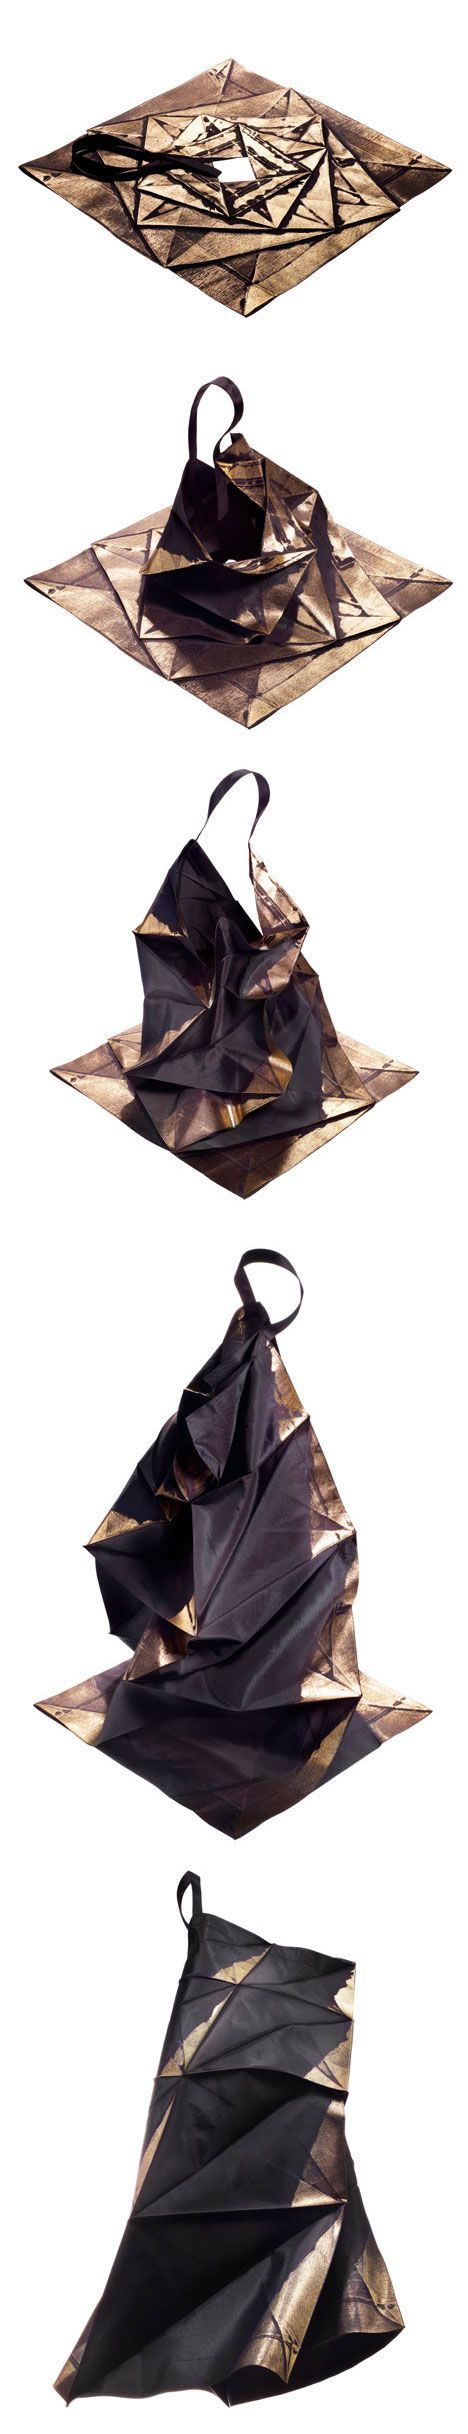 Japanese fashion designer Issey Miyake has designed a range of clothing that expand from two-dimensional geometric shapes into structured shirts, skirts, pants and dresses.